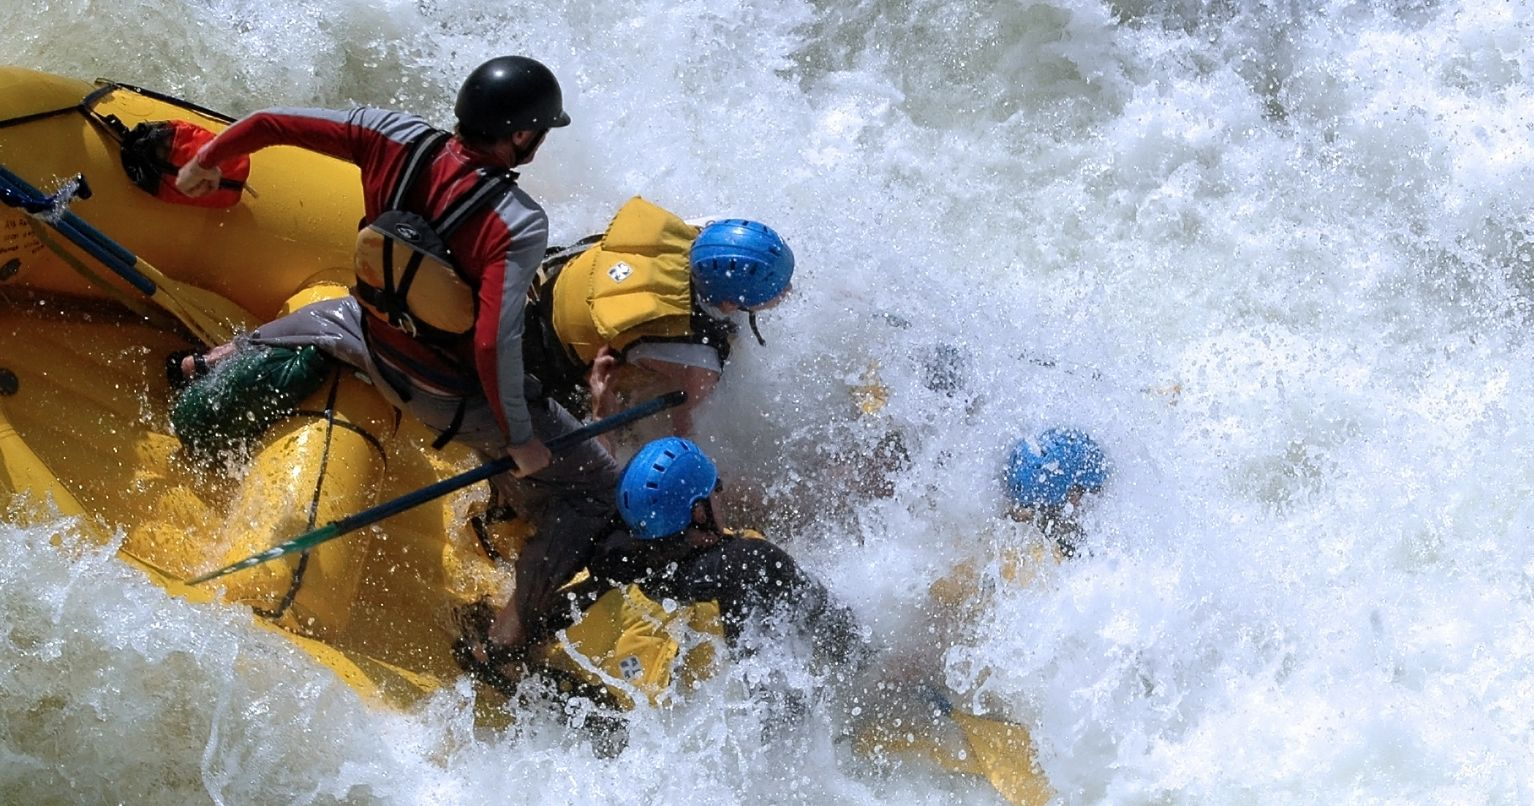 Half-Day Fraser River Rafting Canada Tinggly Experience Gifts